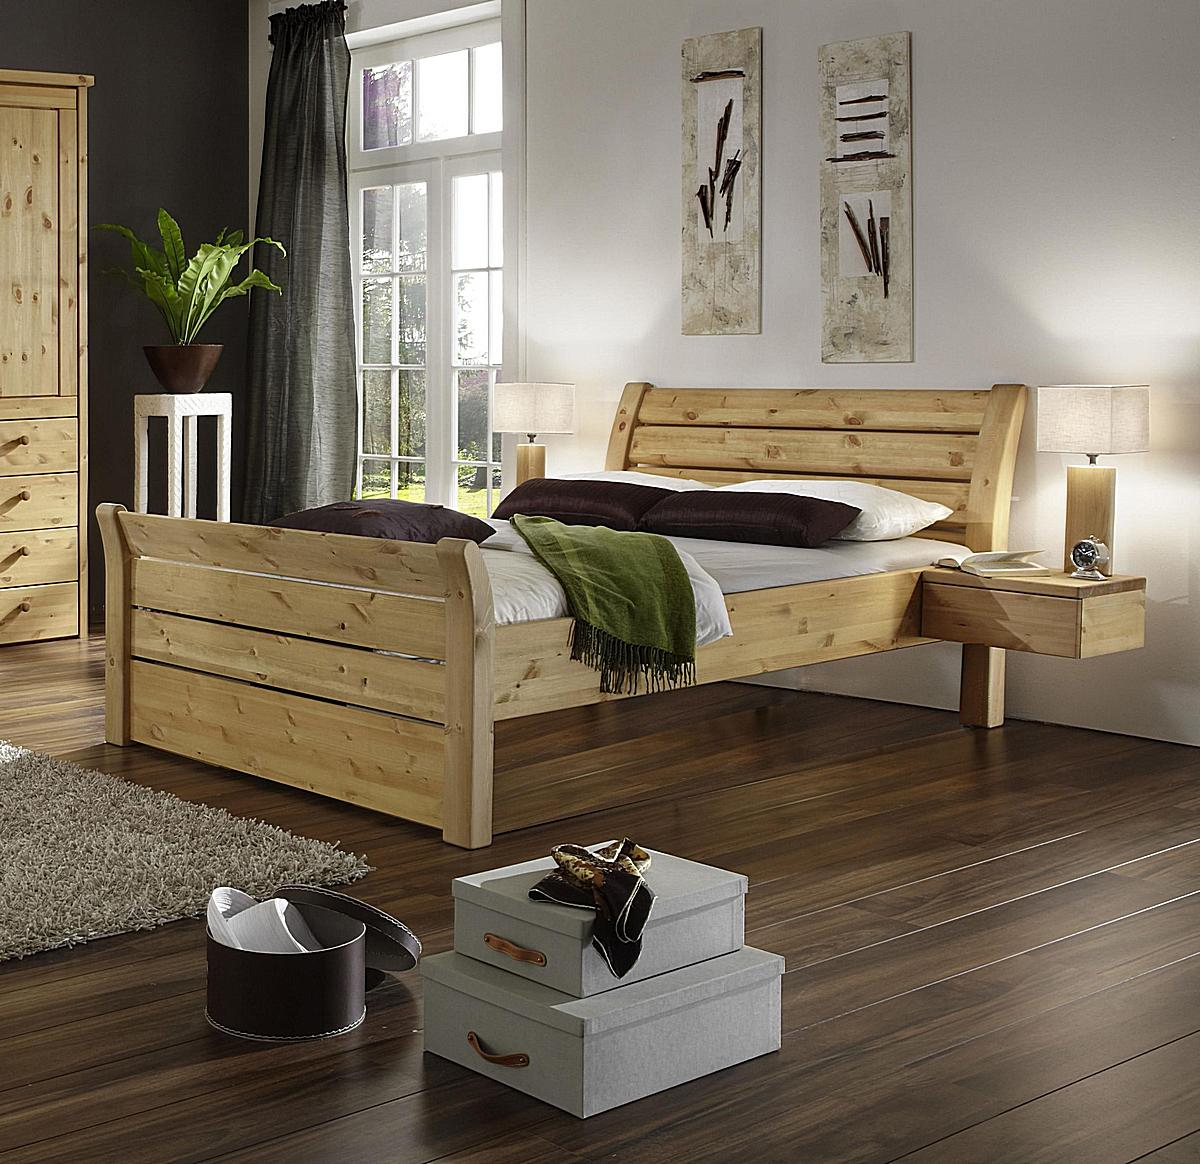 vollholz doppelbett landhausstil kiefer massiv gelaugt ge lt 180 x 200 cm. Black Bedroom Furniture Sets. Home Design Ideas